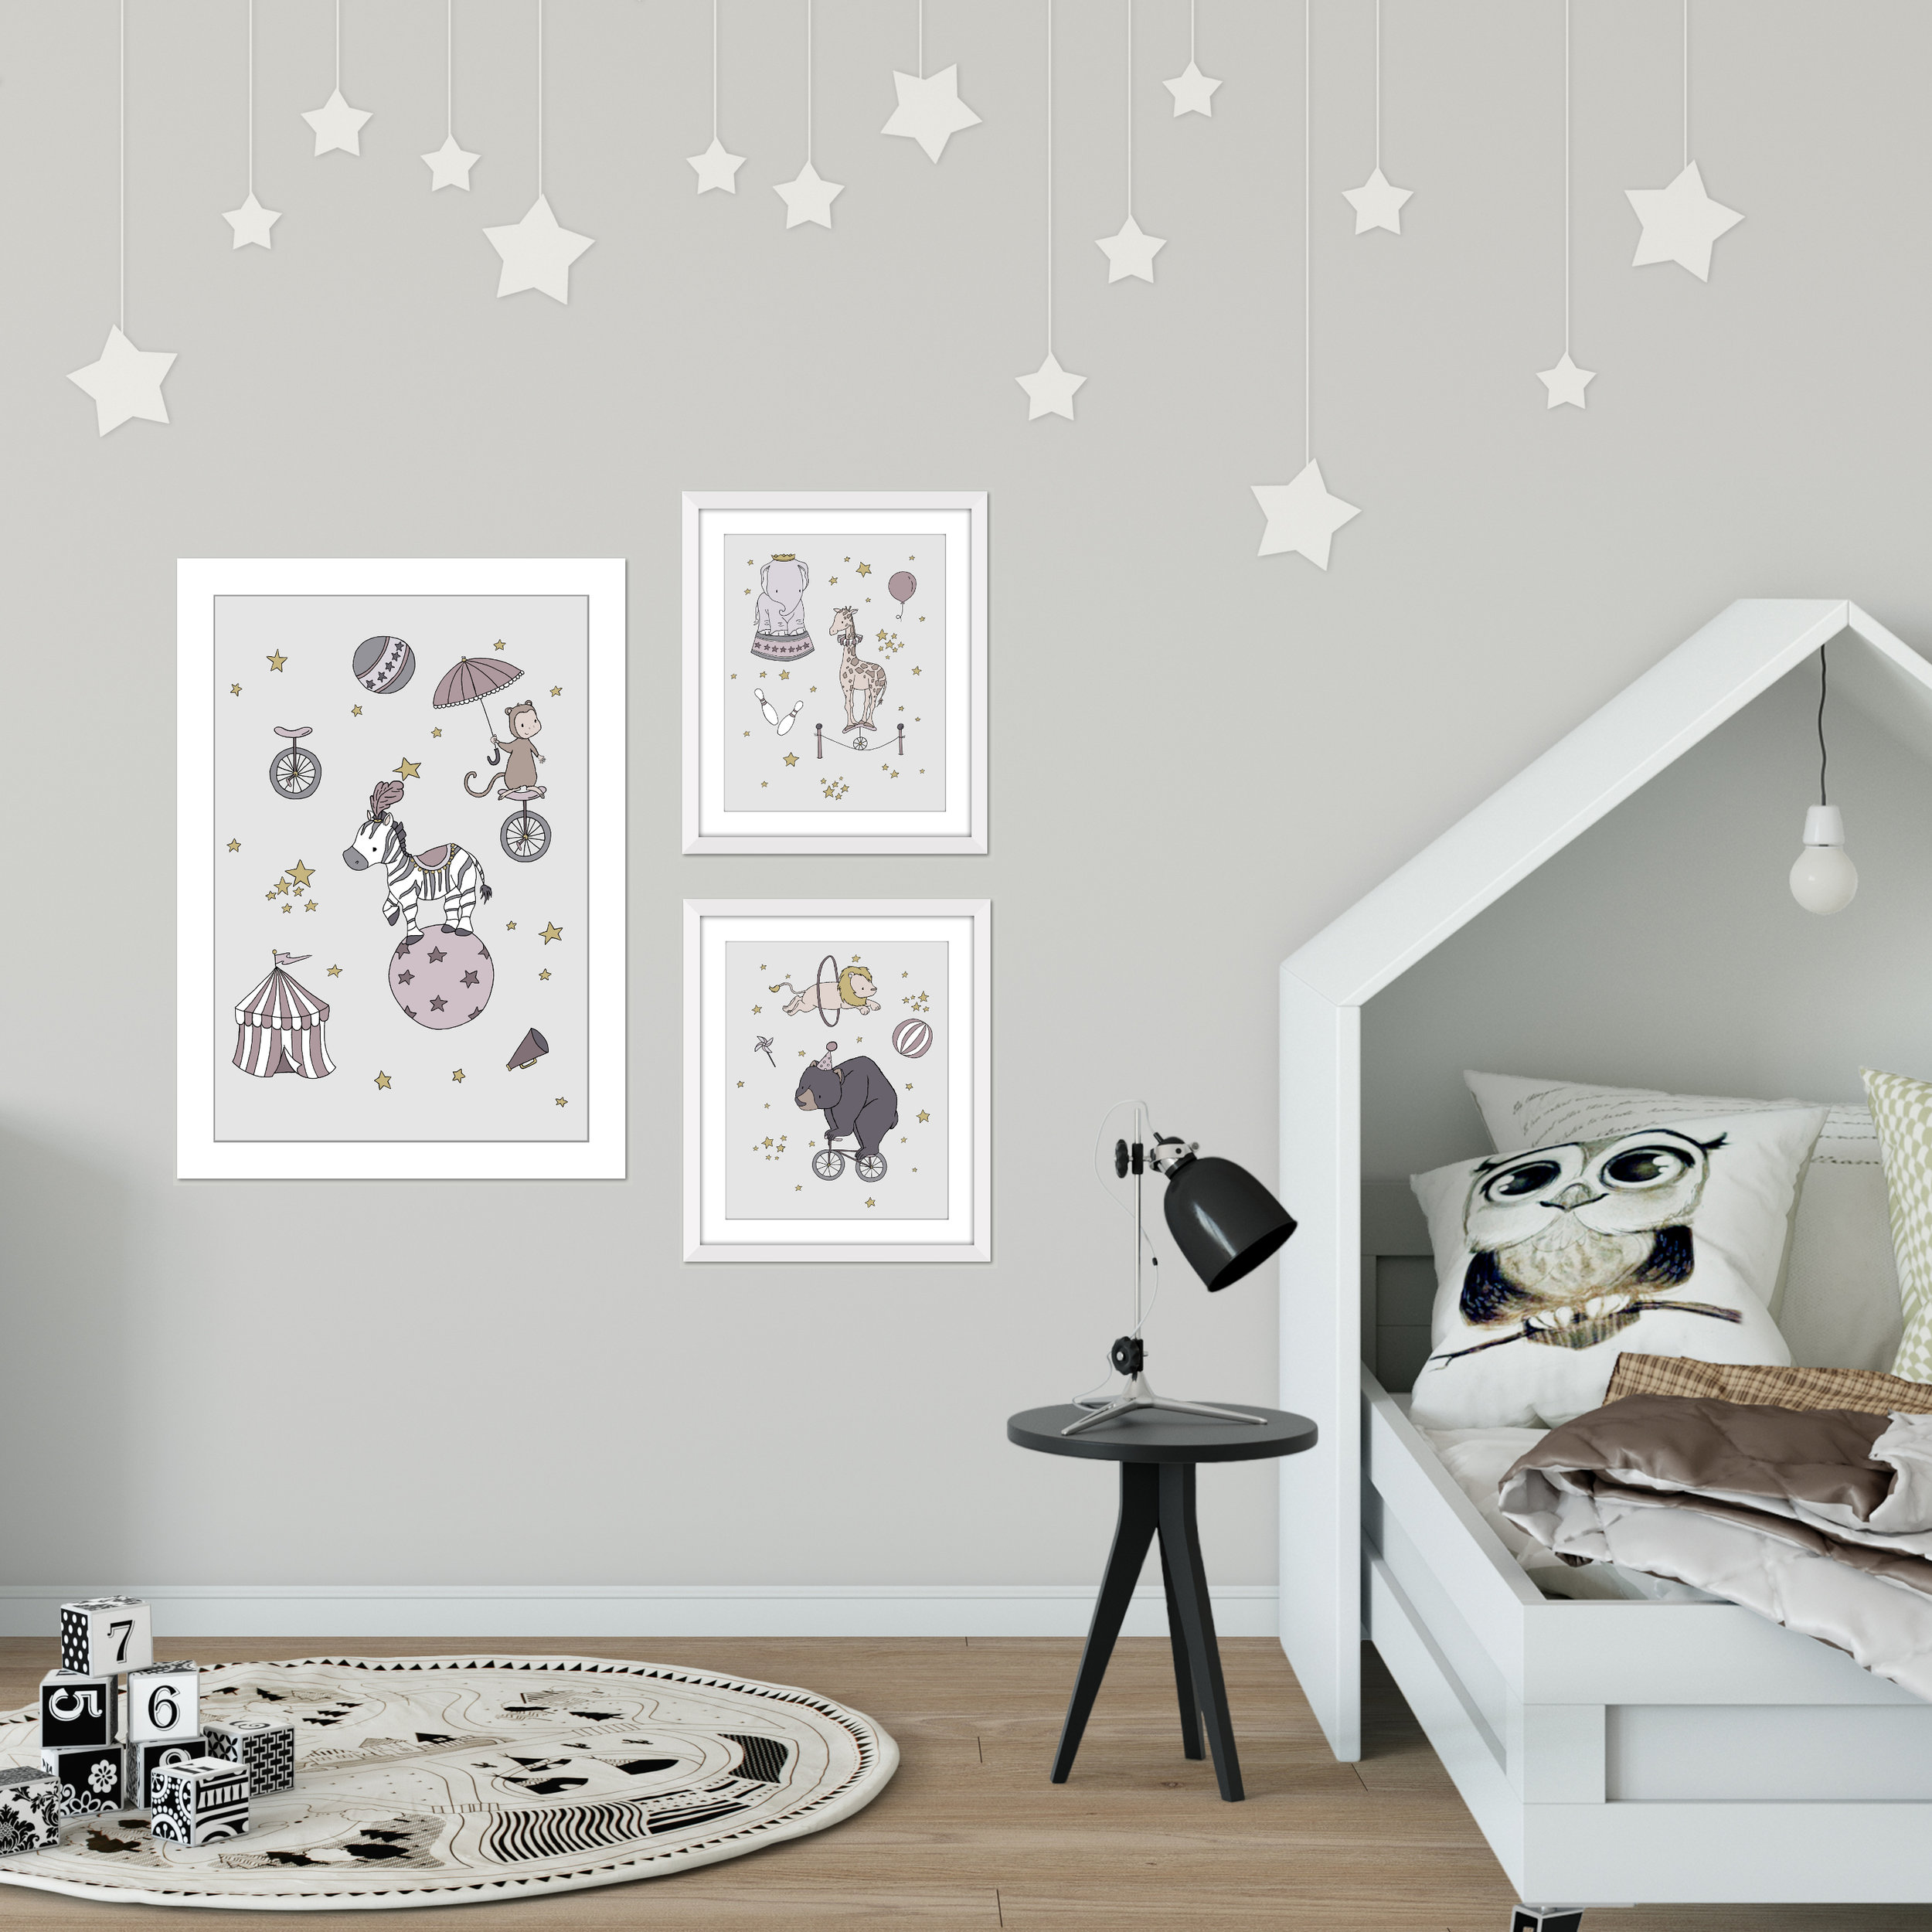 Circus Dreams - the new collection from Sweet Melody Designs